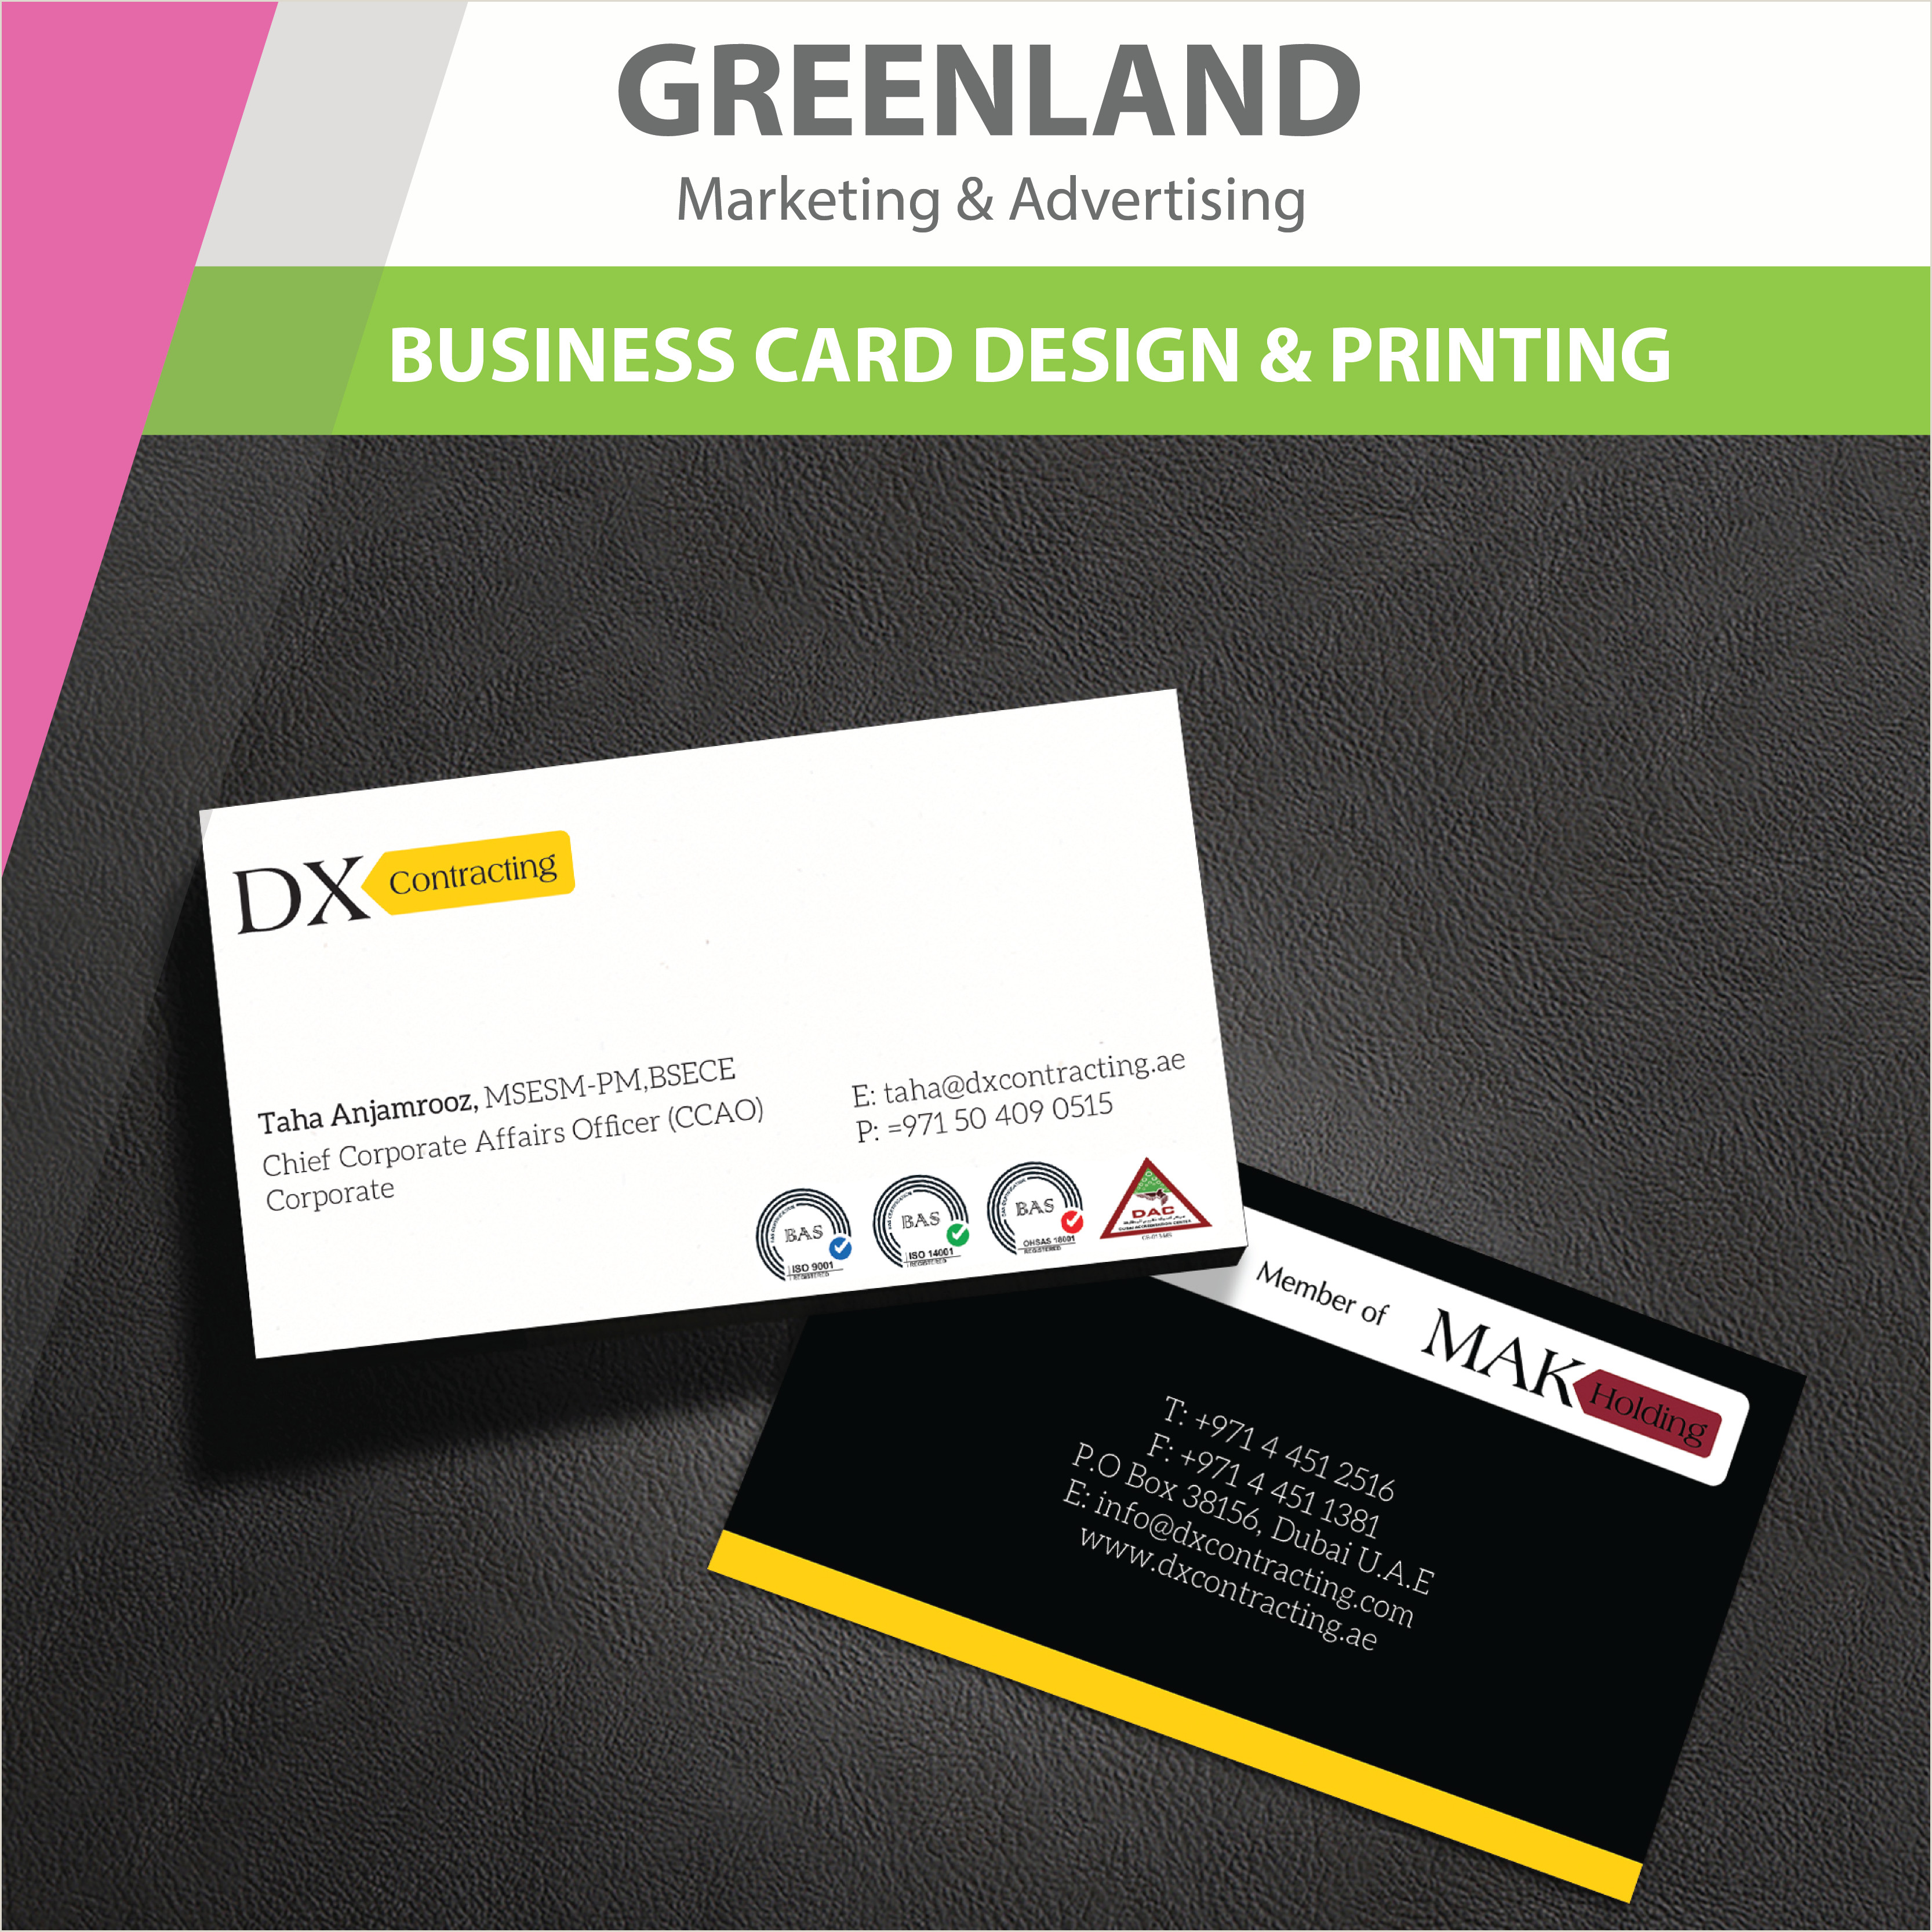 How Do You Make Business Cards A Simple Yet Elegant And Corporate Looking Businesscard